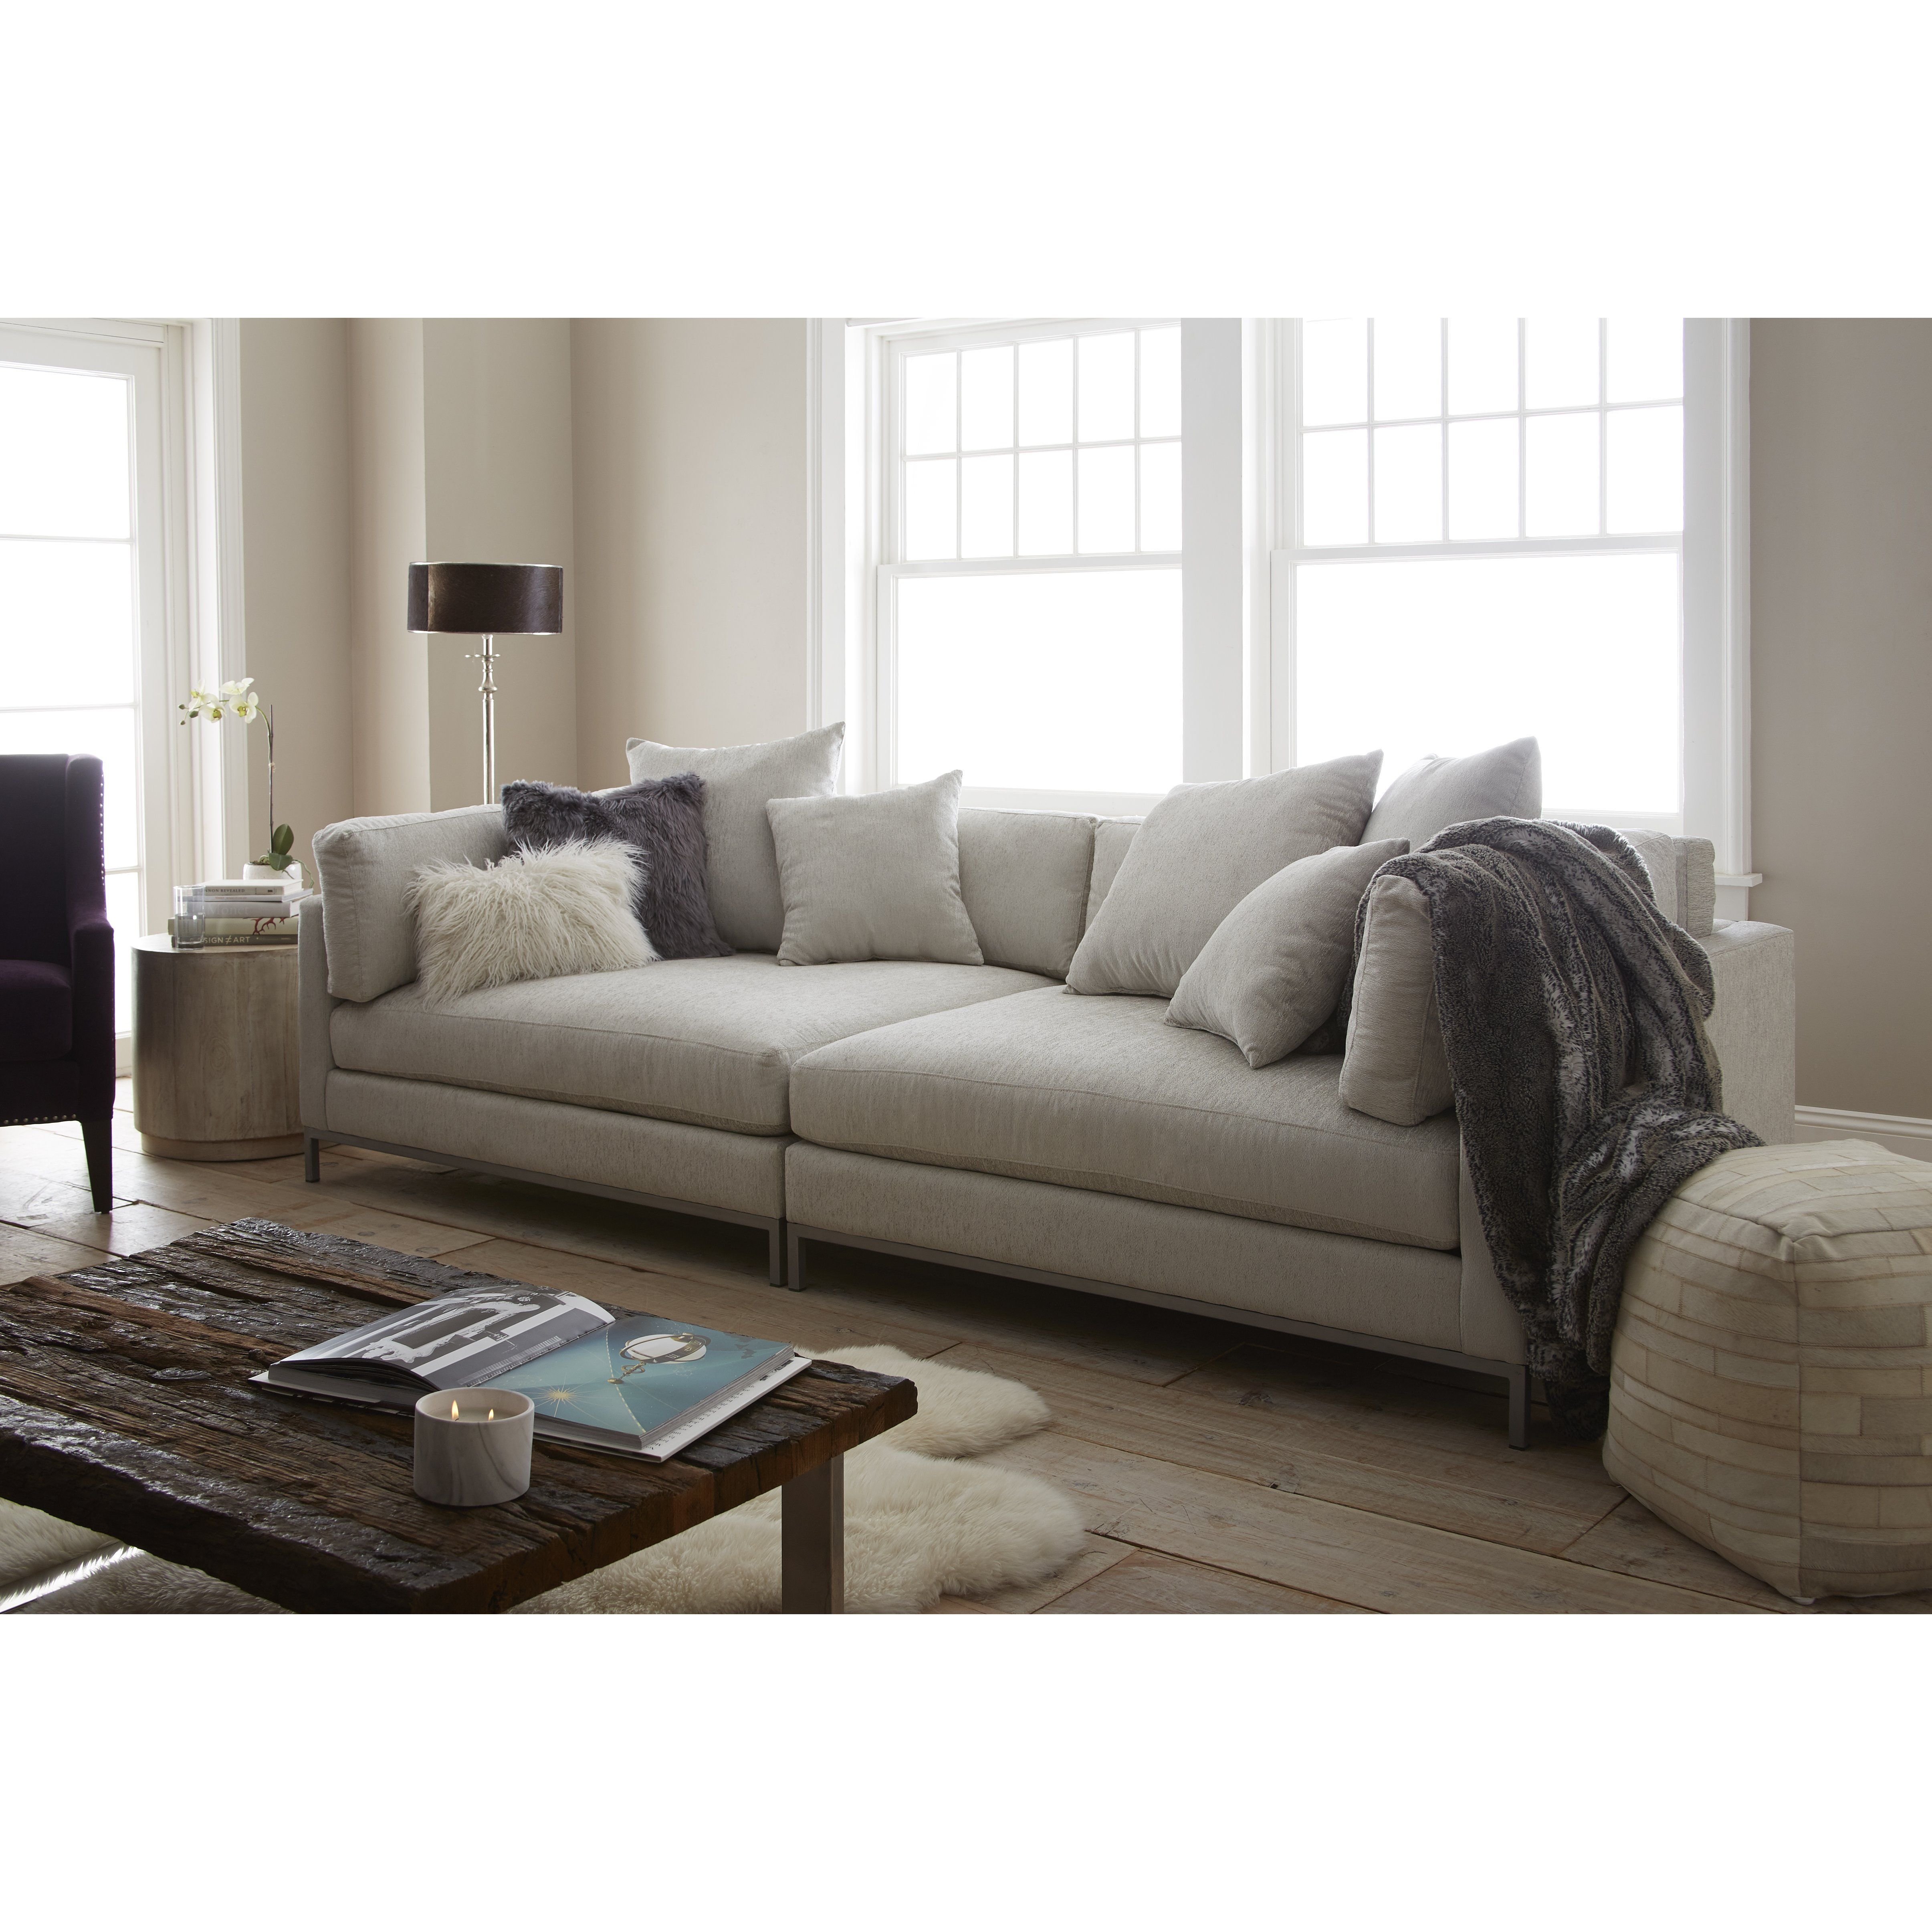 Home by Sean & Catherine Lowe Veda Sofa Wayfair